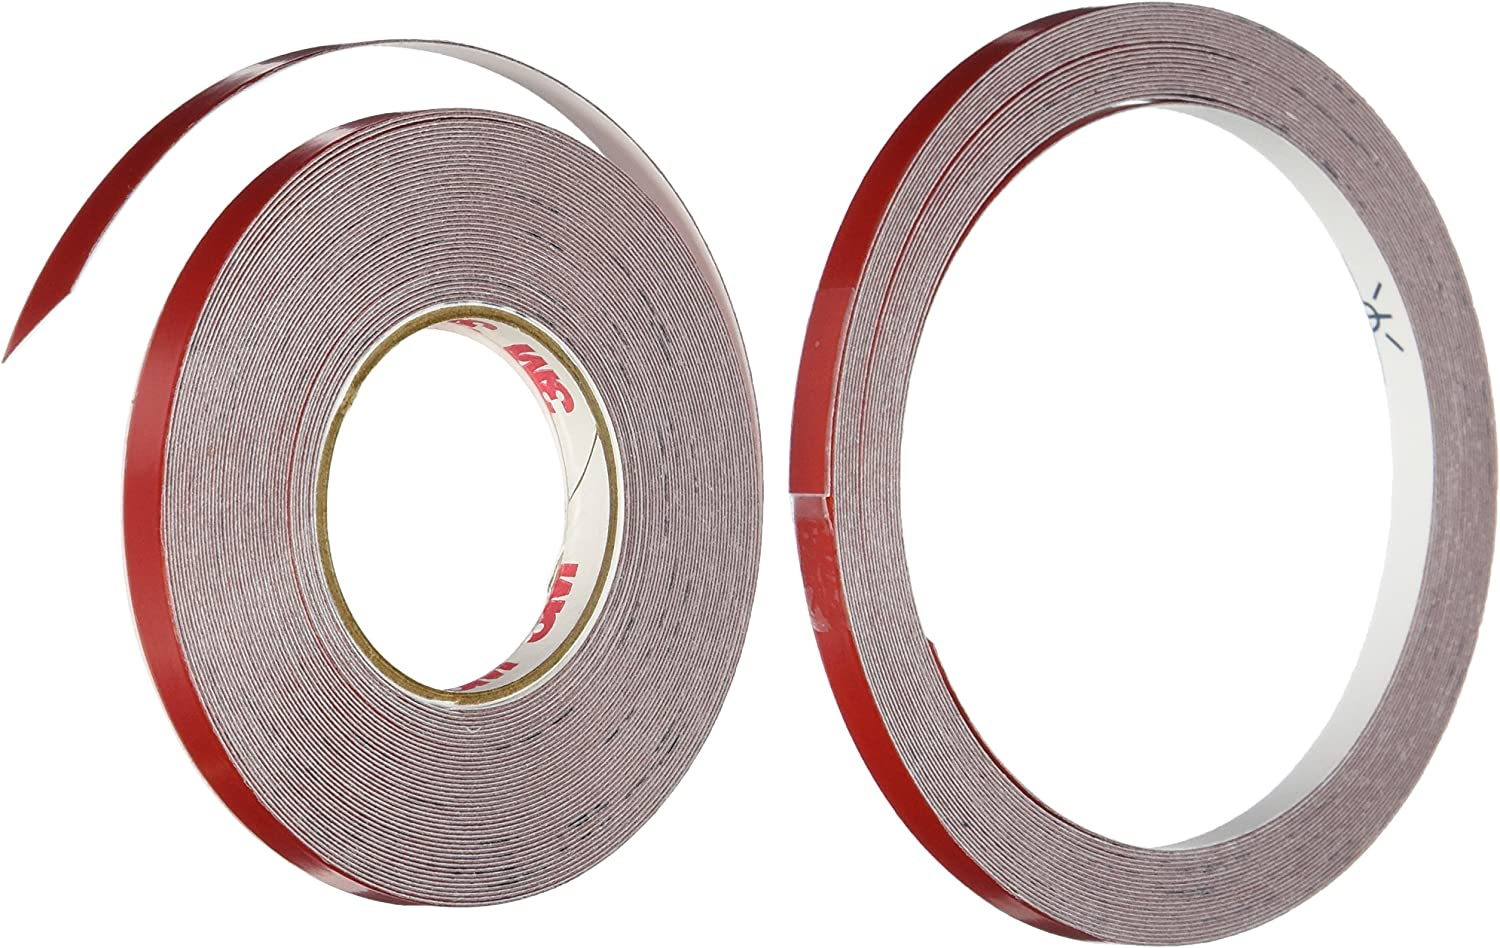 3M Scotchcal Reflective Striping Tape, Red, .25-Inch by 50-Foot